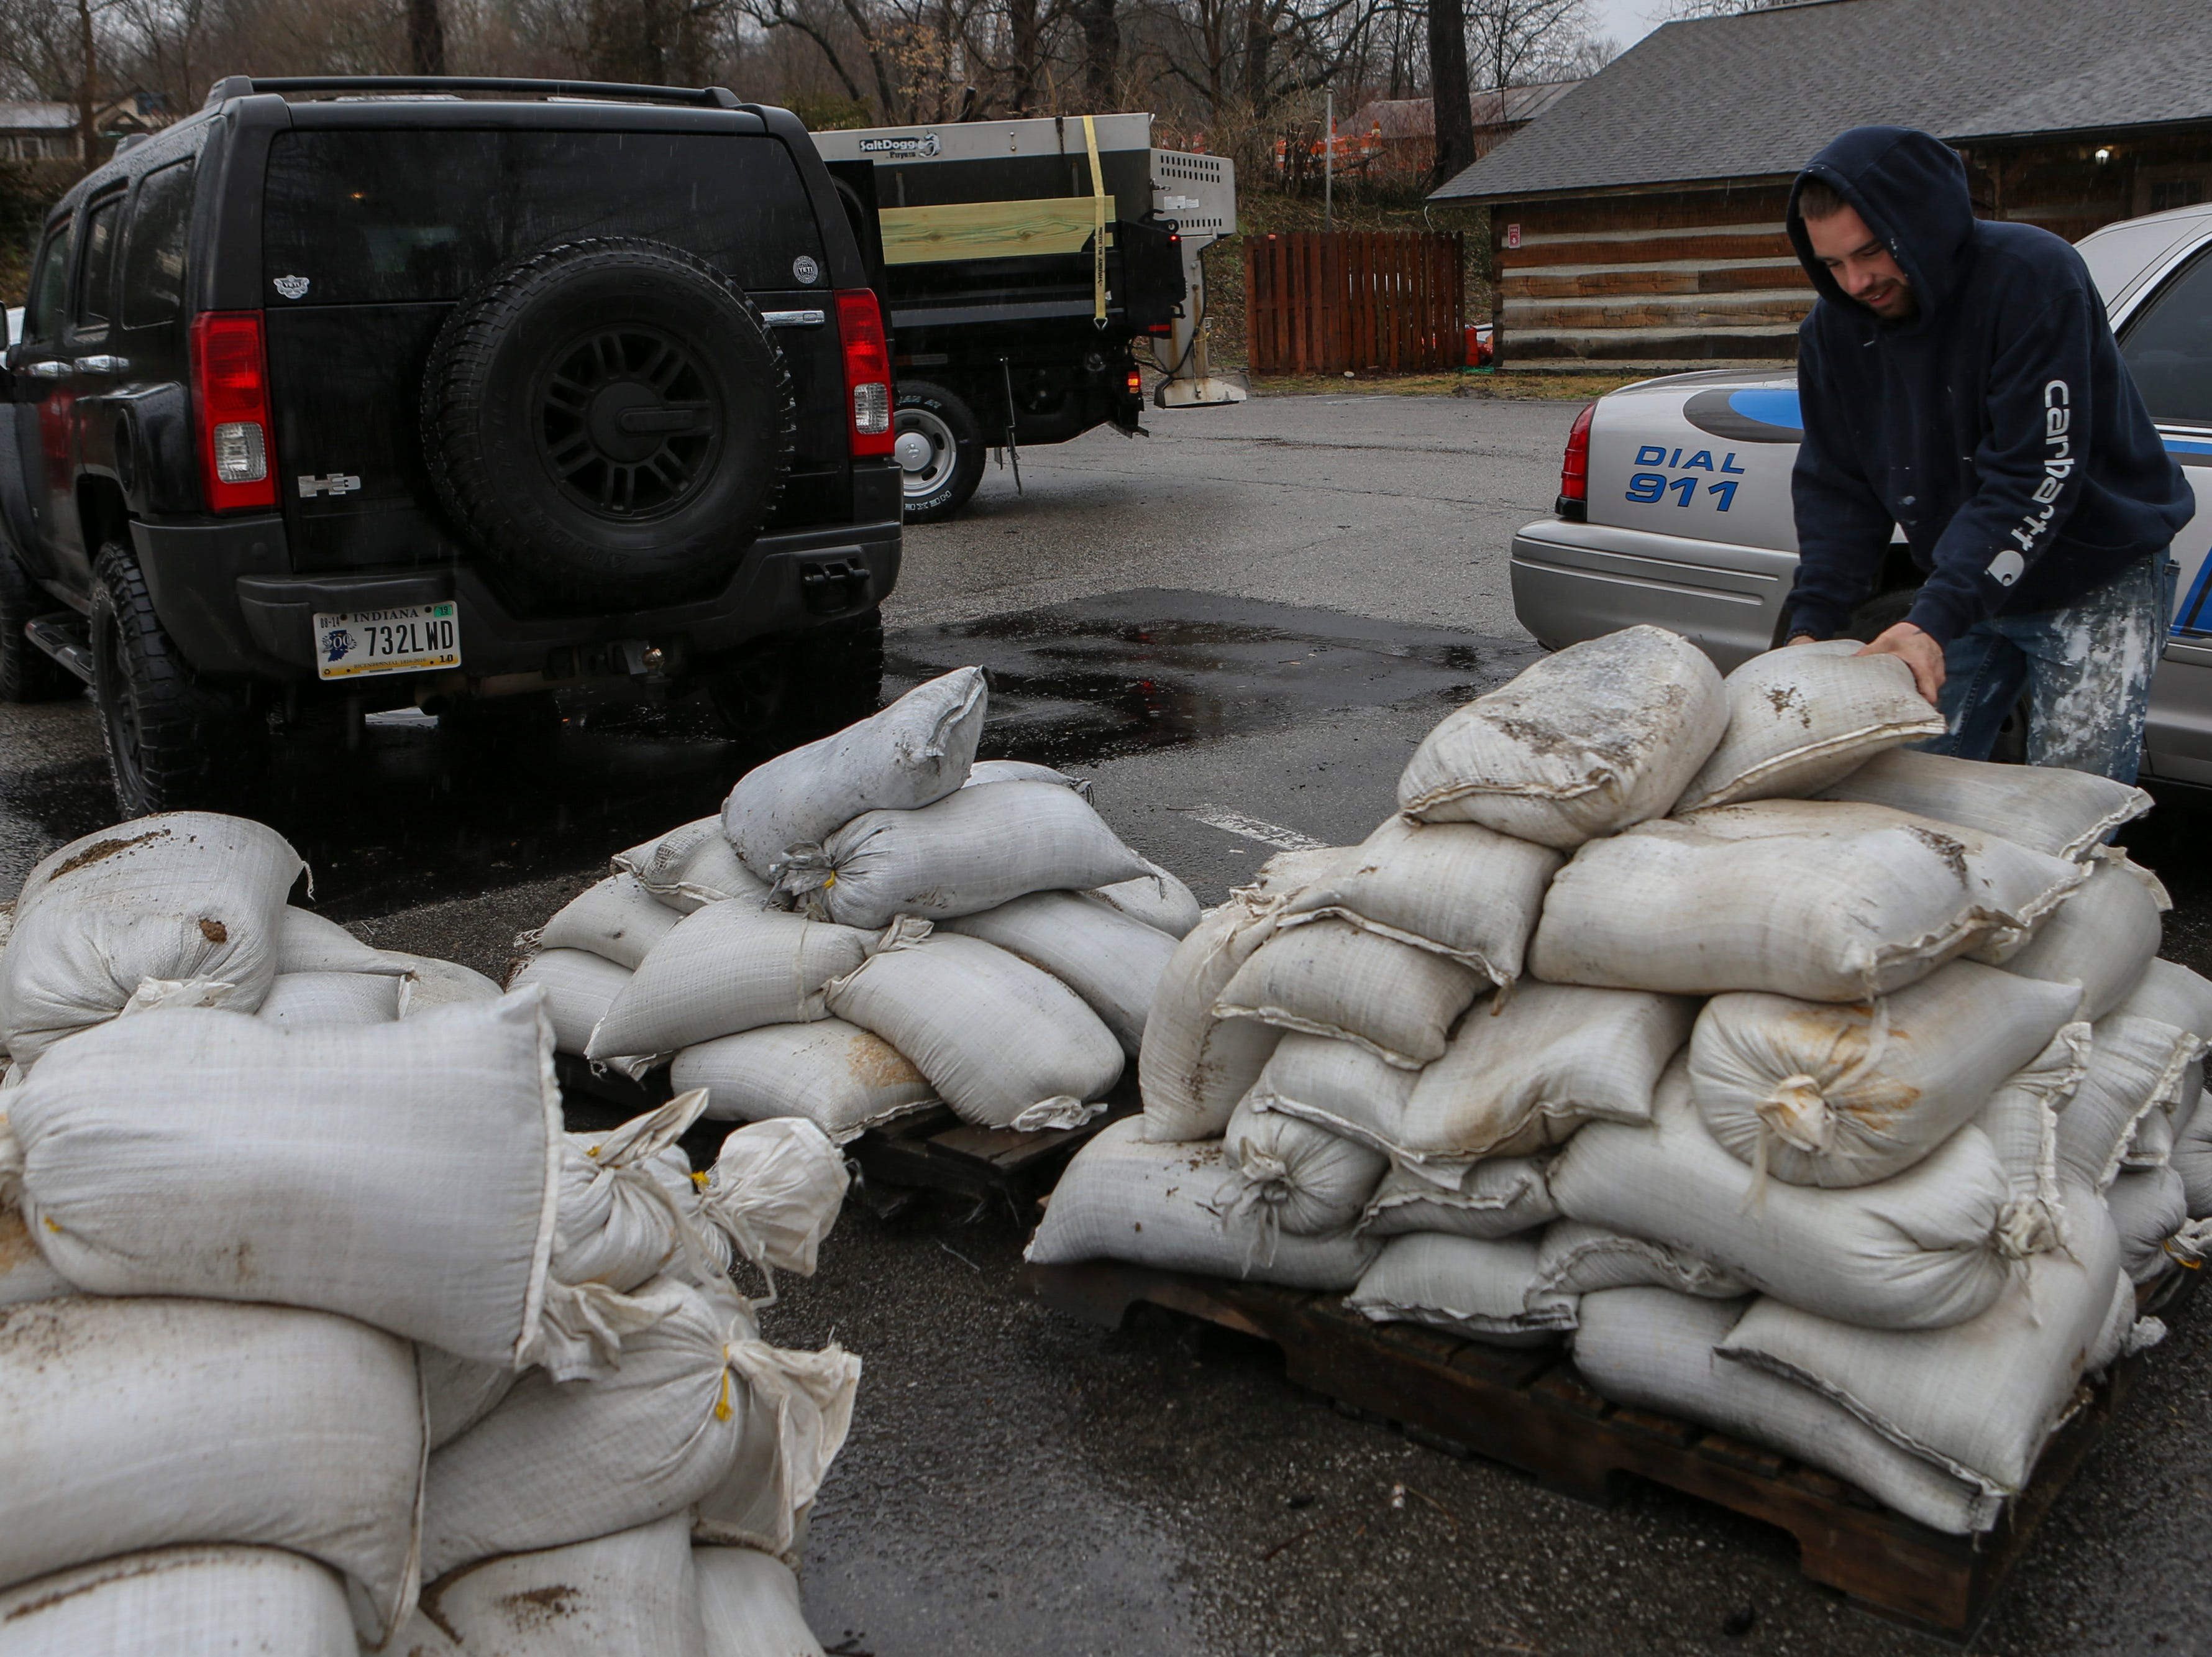 Chase Johnson picks up sandbags in Utica, Ind. on Monday as the area braces for high river waters and flooding. Feb. 11, 2019